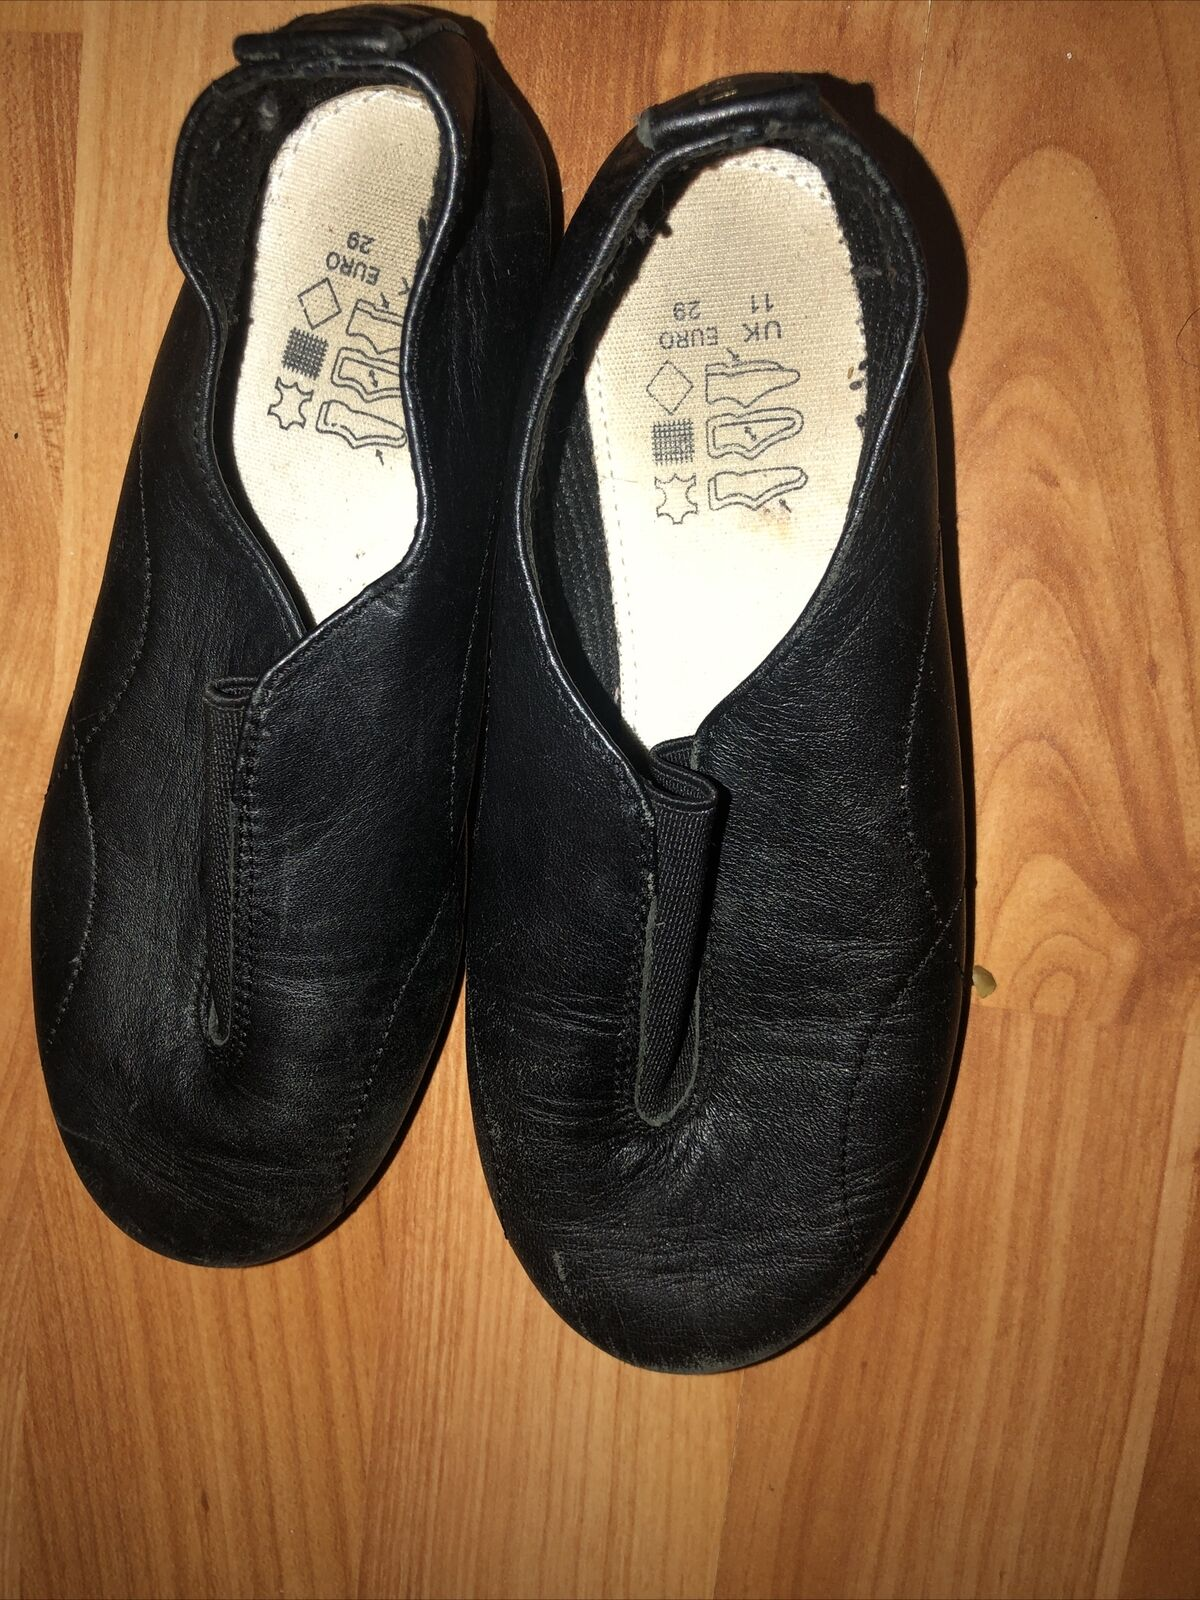 Childs Dance Shoes Uk Size 11 Euro 29